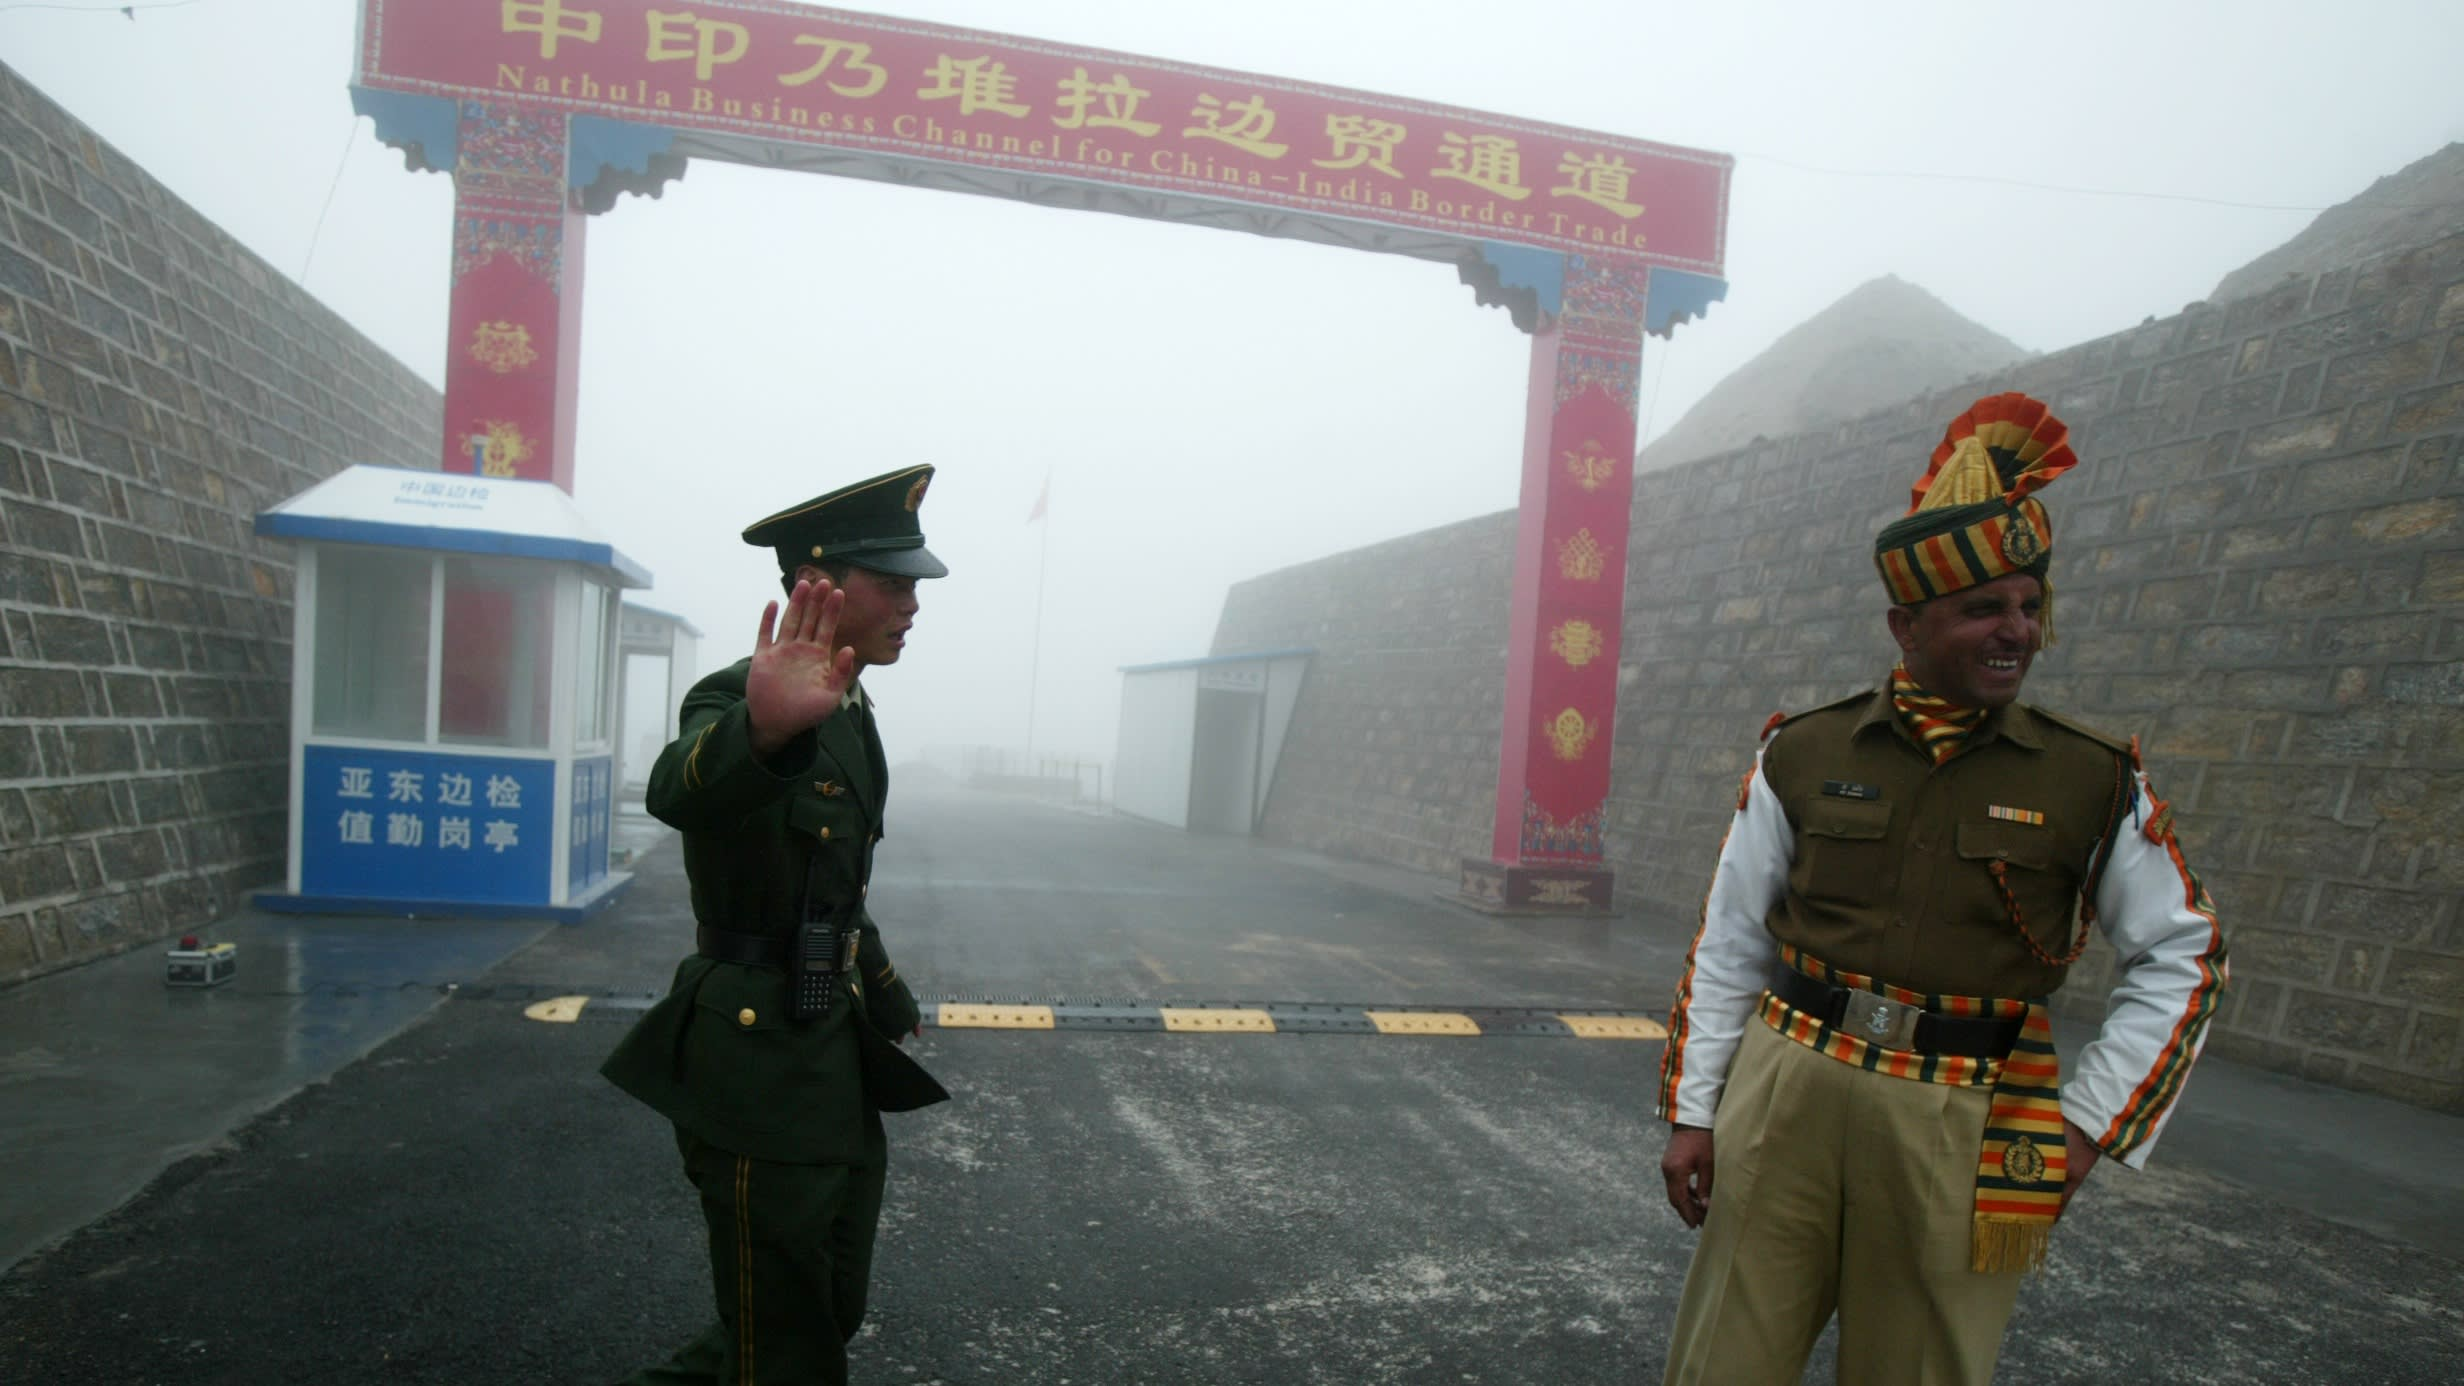 China-India escalation of border tensions: China has more that 40 casualties